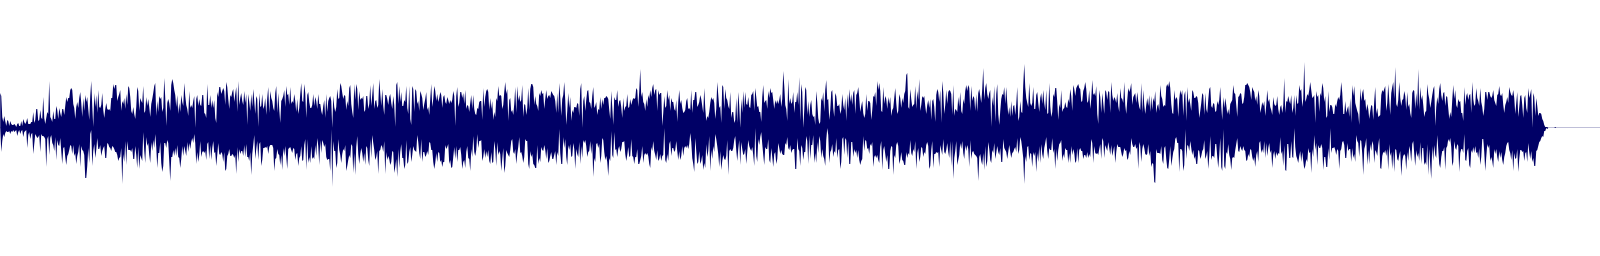 waveform of track #100865